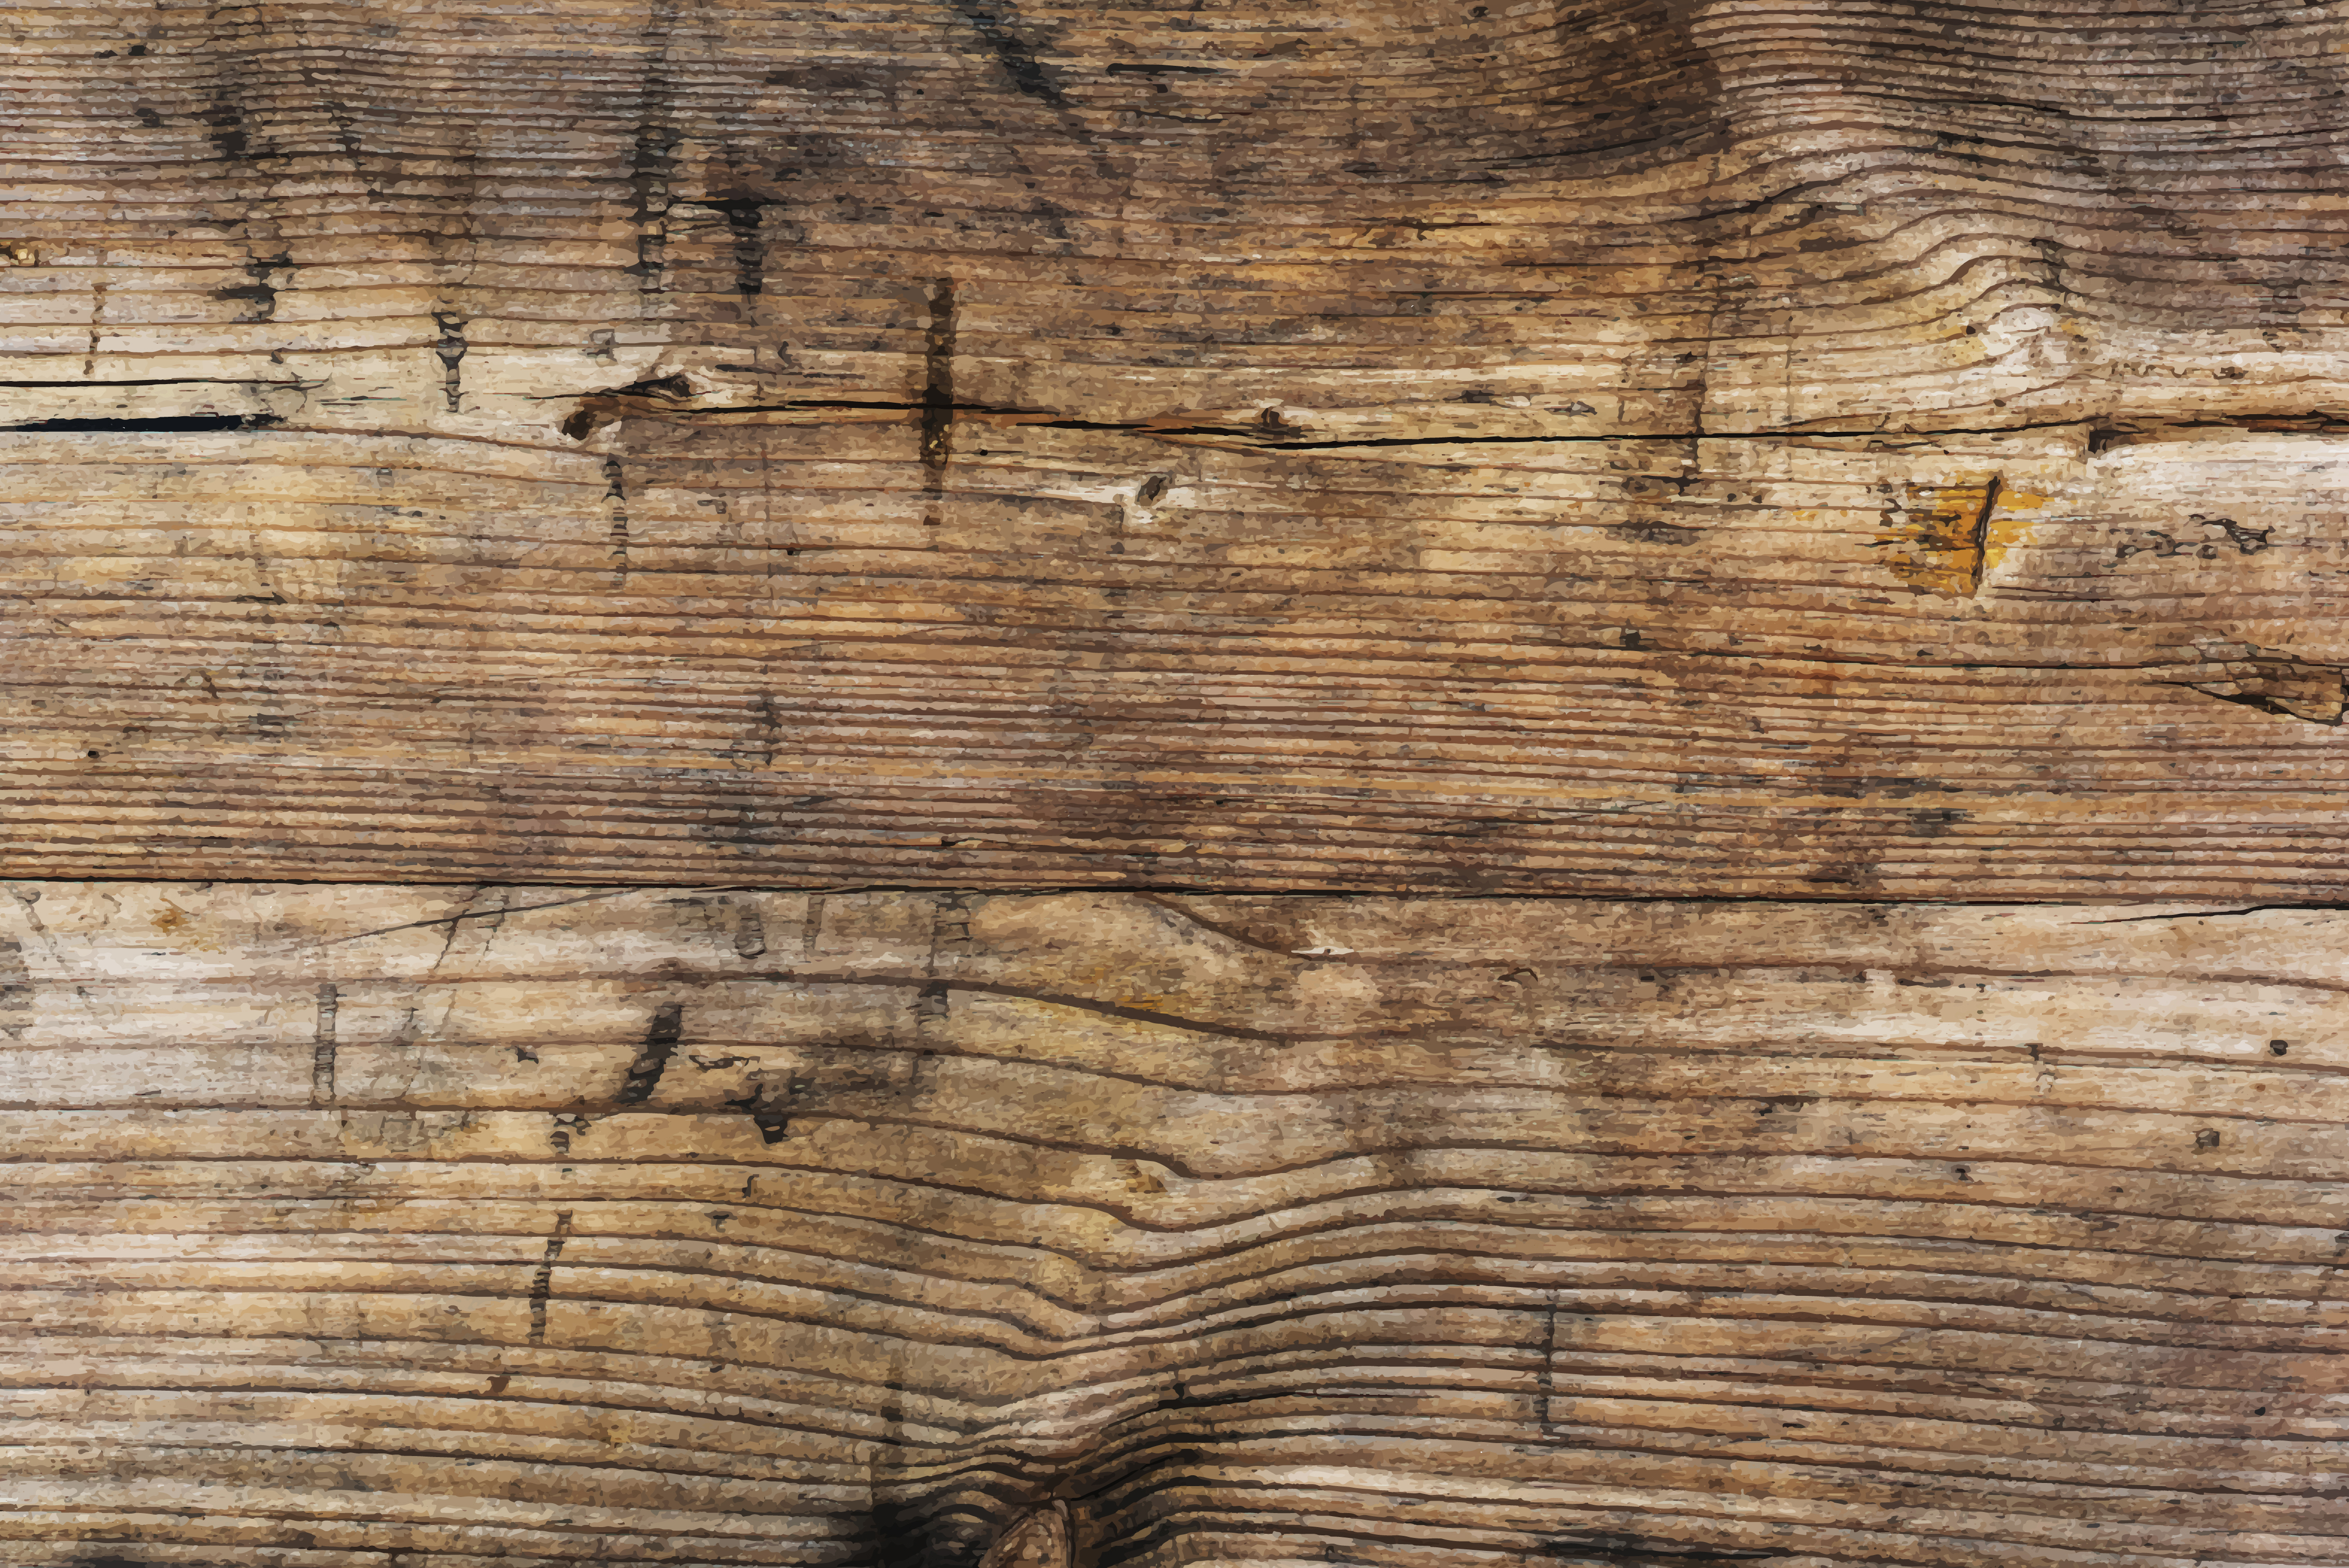 Close Up Of A Wooden Plank Textured Background Download Free Vectors Clipart Graphics